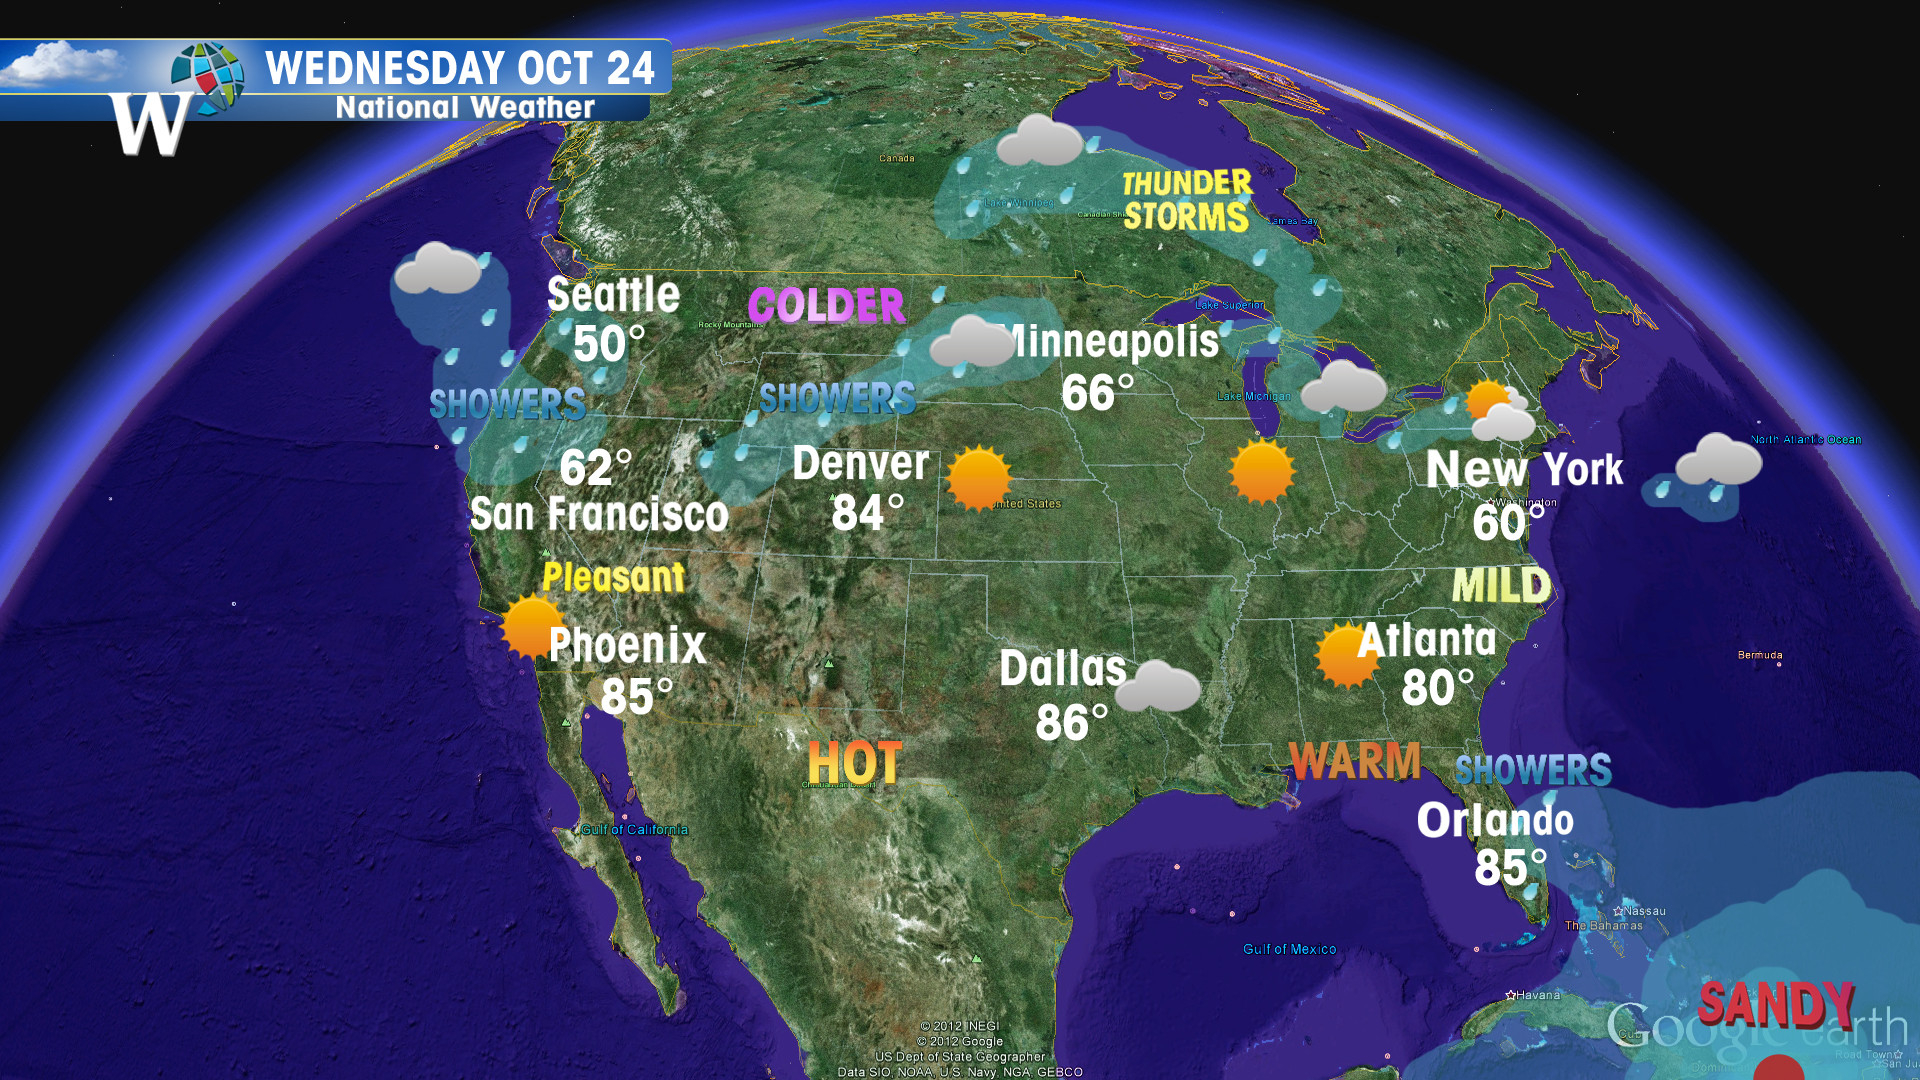 California Weather Map Forecast Detailed Cnn Weather Forecast For - California Weather Map For Today